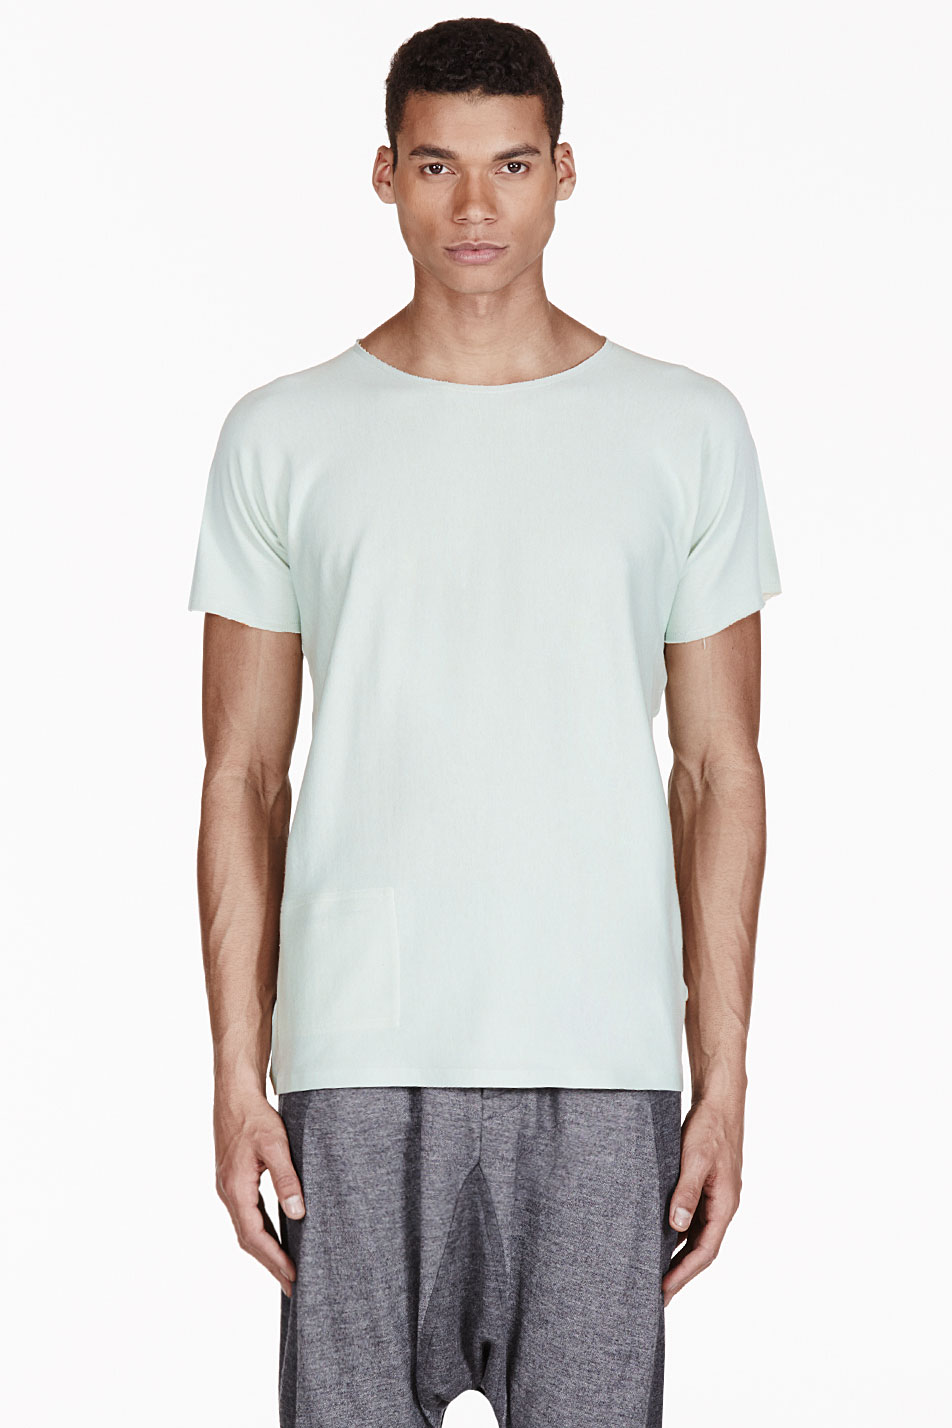 adidas by tom dixon mint green reversible t_shirt